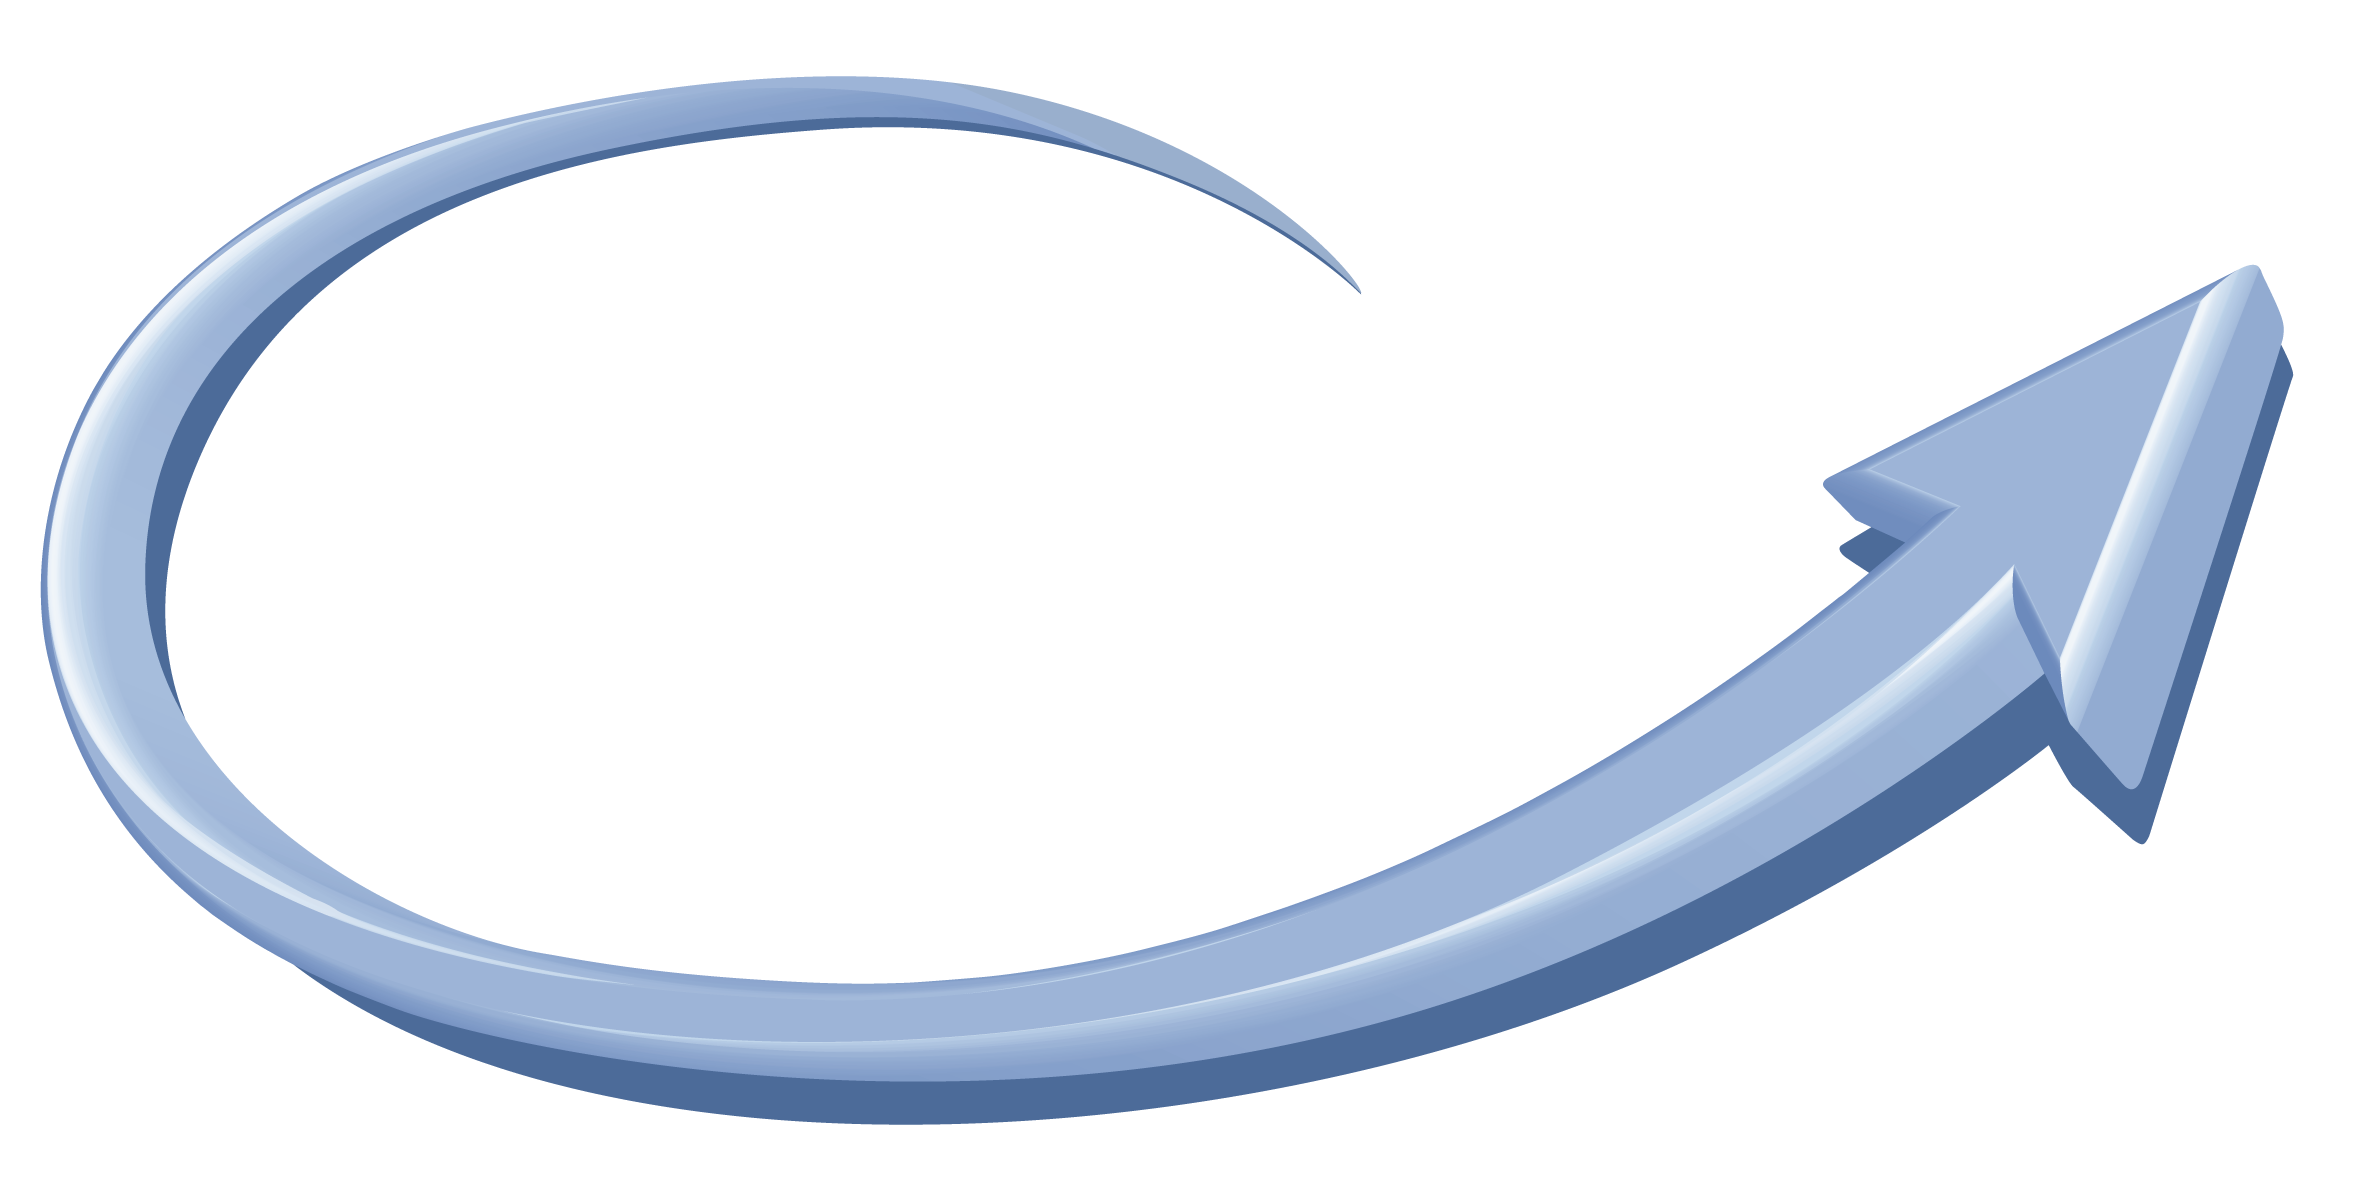 nrg logo white final blue shadow